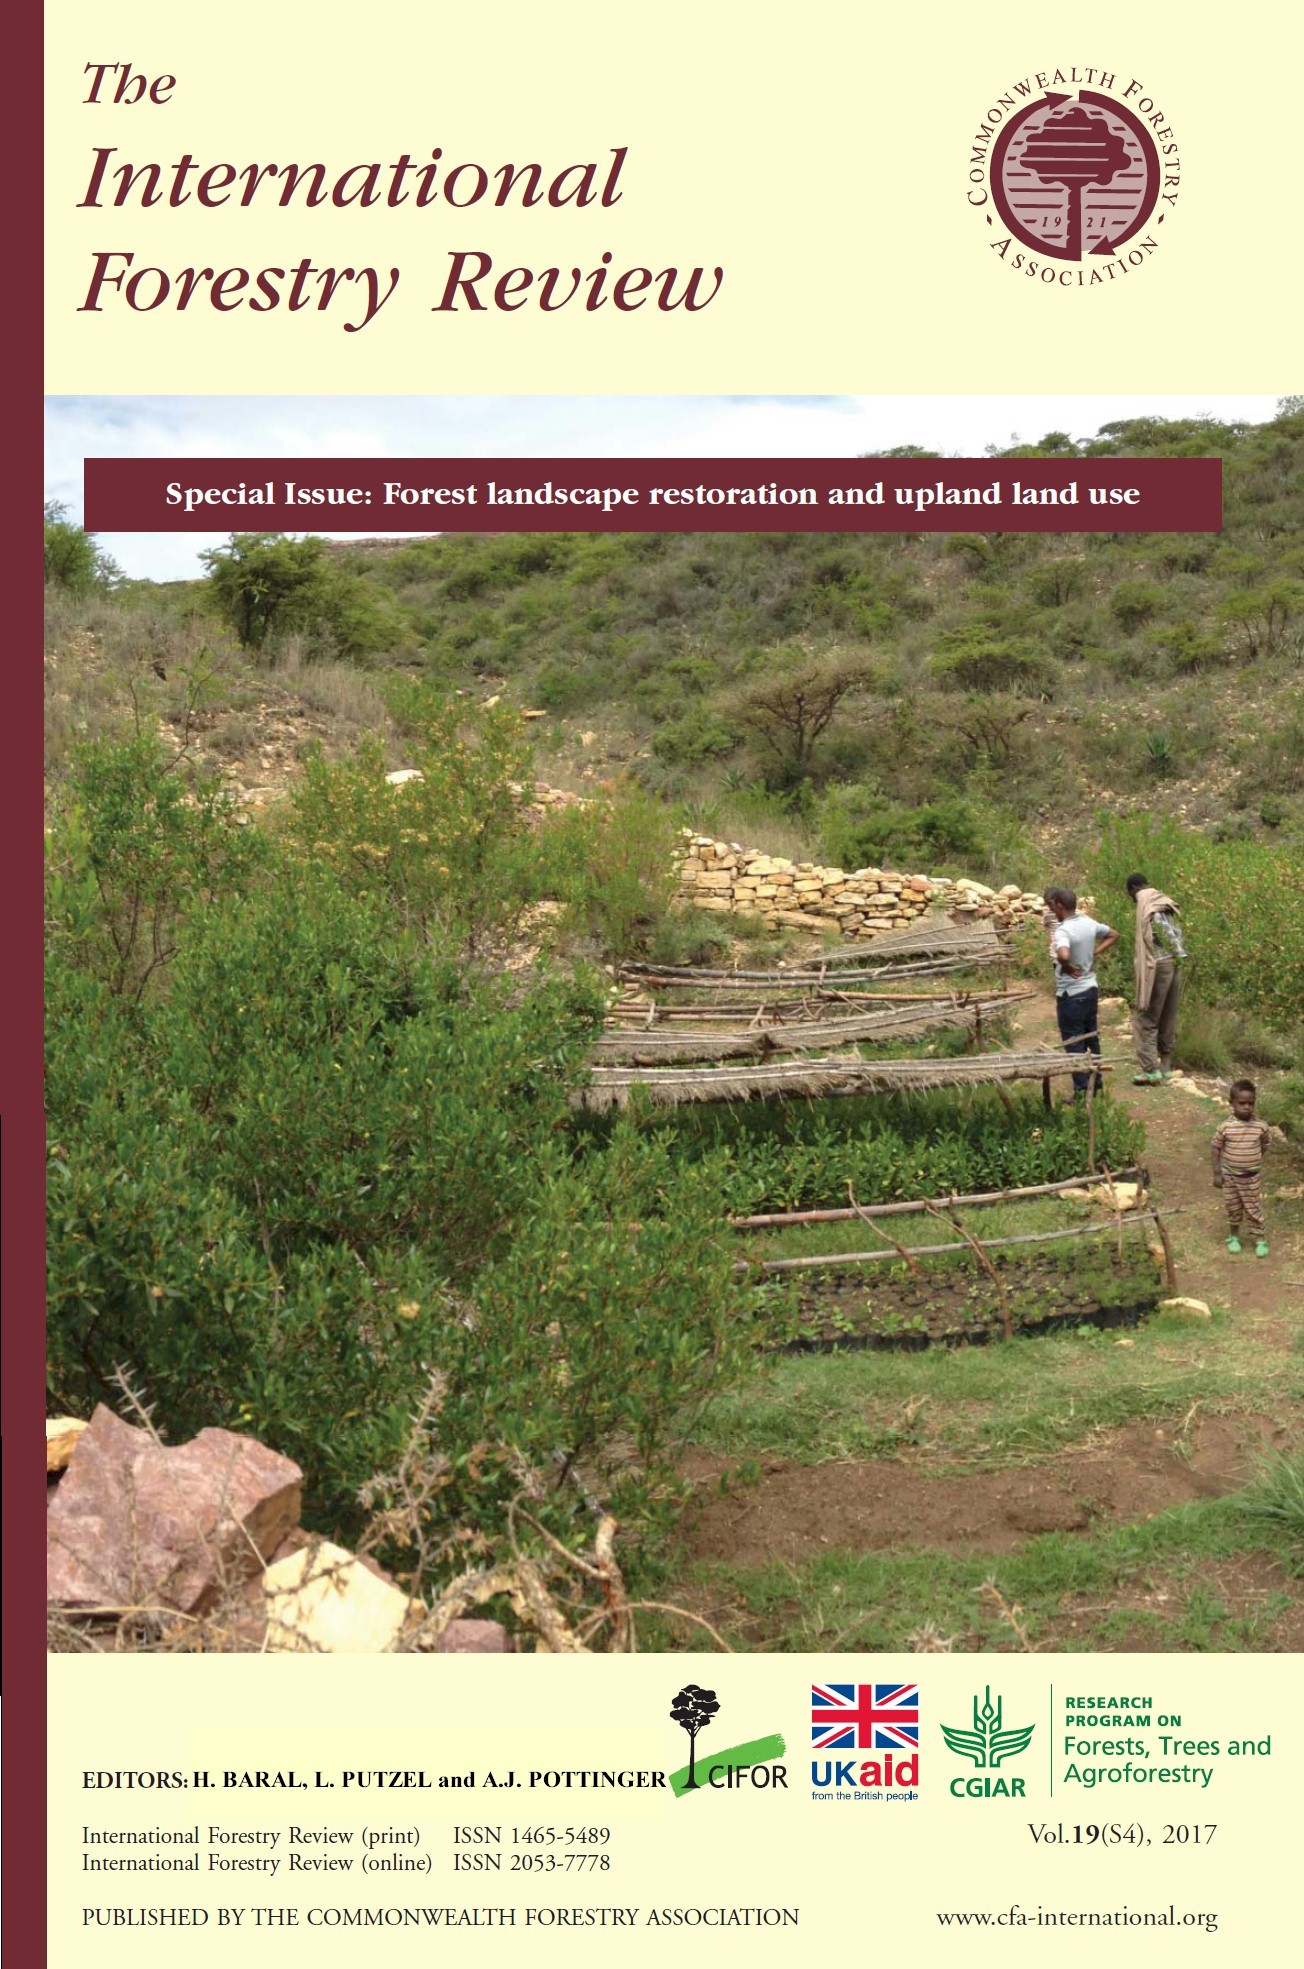 Studies on forest landscape restoration in hilly and mountainous regions of Asia and Africa – an introduction to the Special Issue